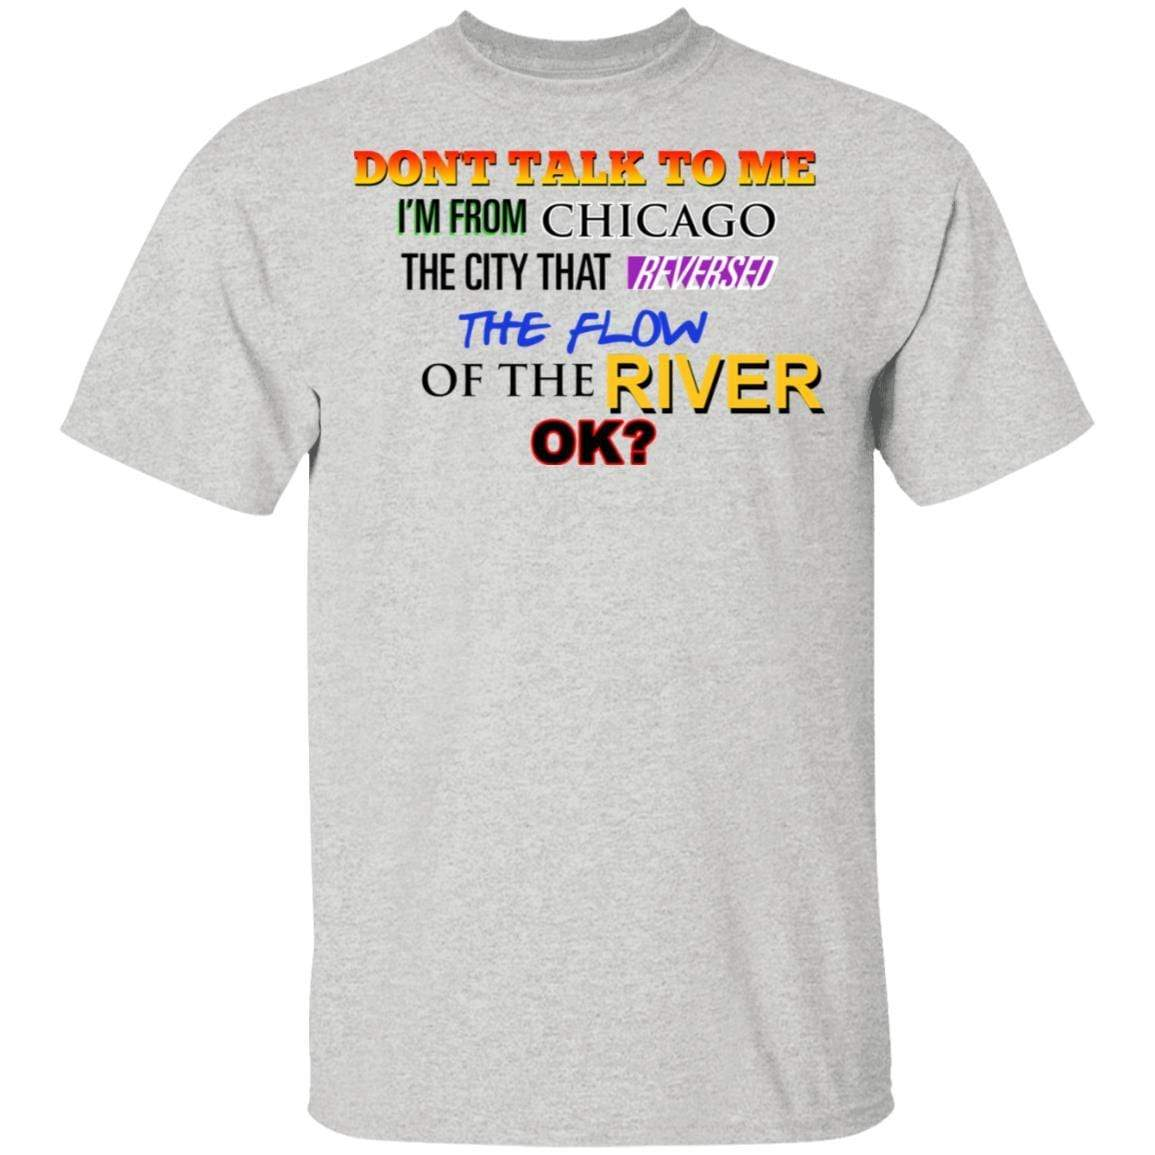 Don't Talk To Me I'm From Chicago The City That Reversed The Flow Of The River T-Shirts, Hoodies 1049-9952-90248040-48184 - Tee Ript